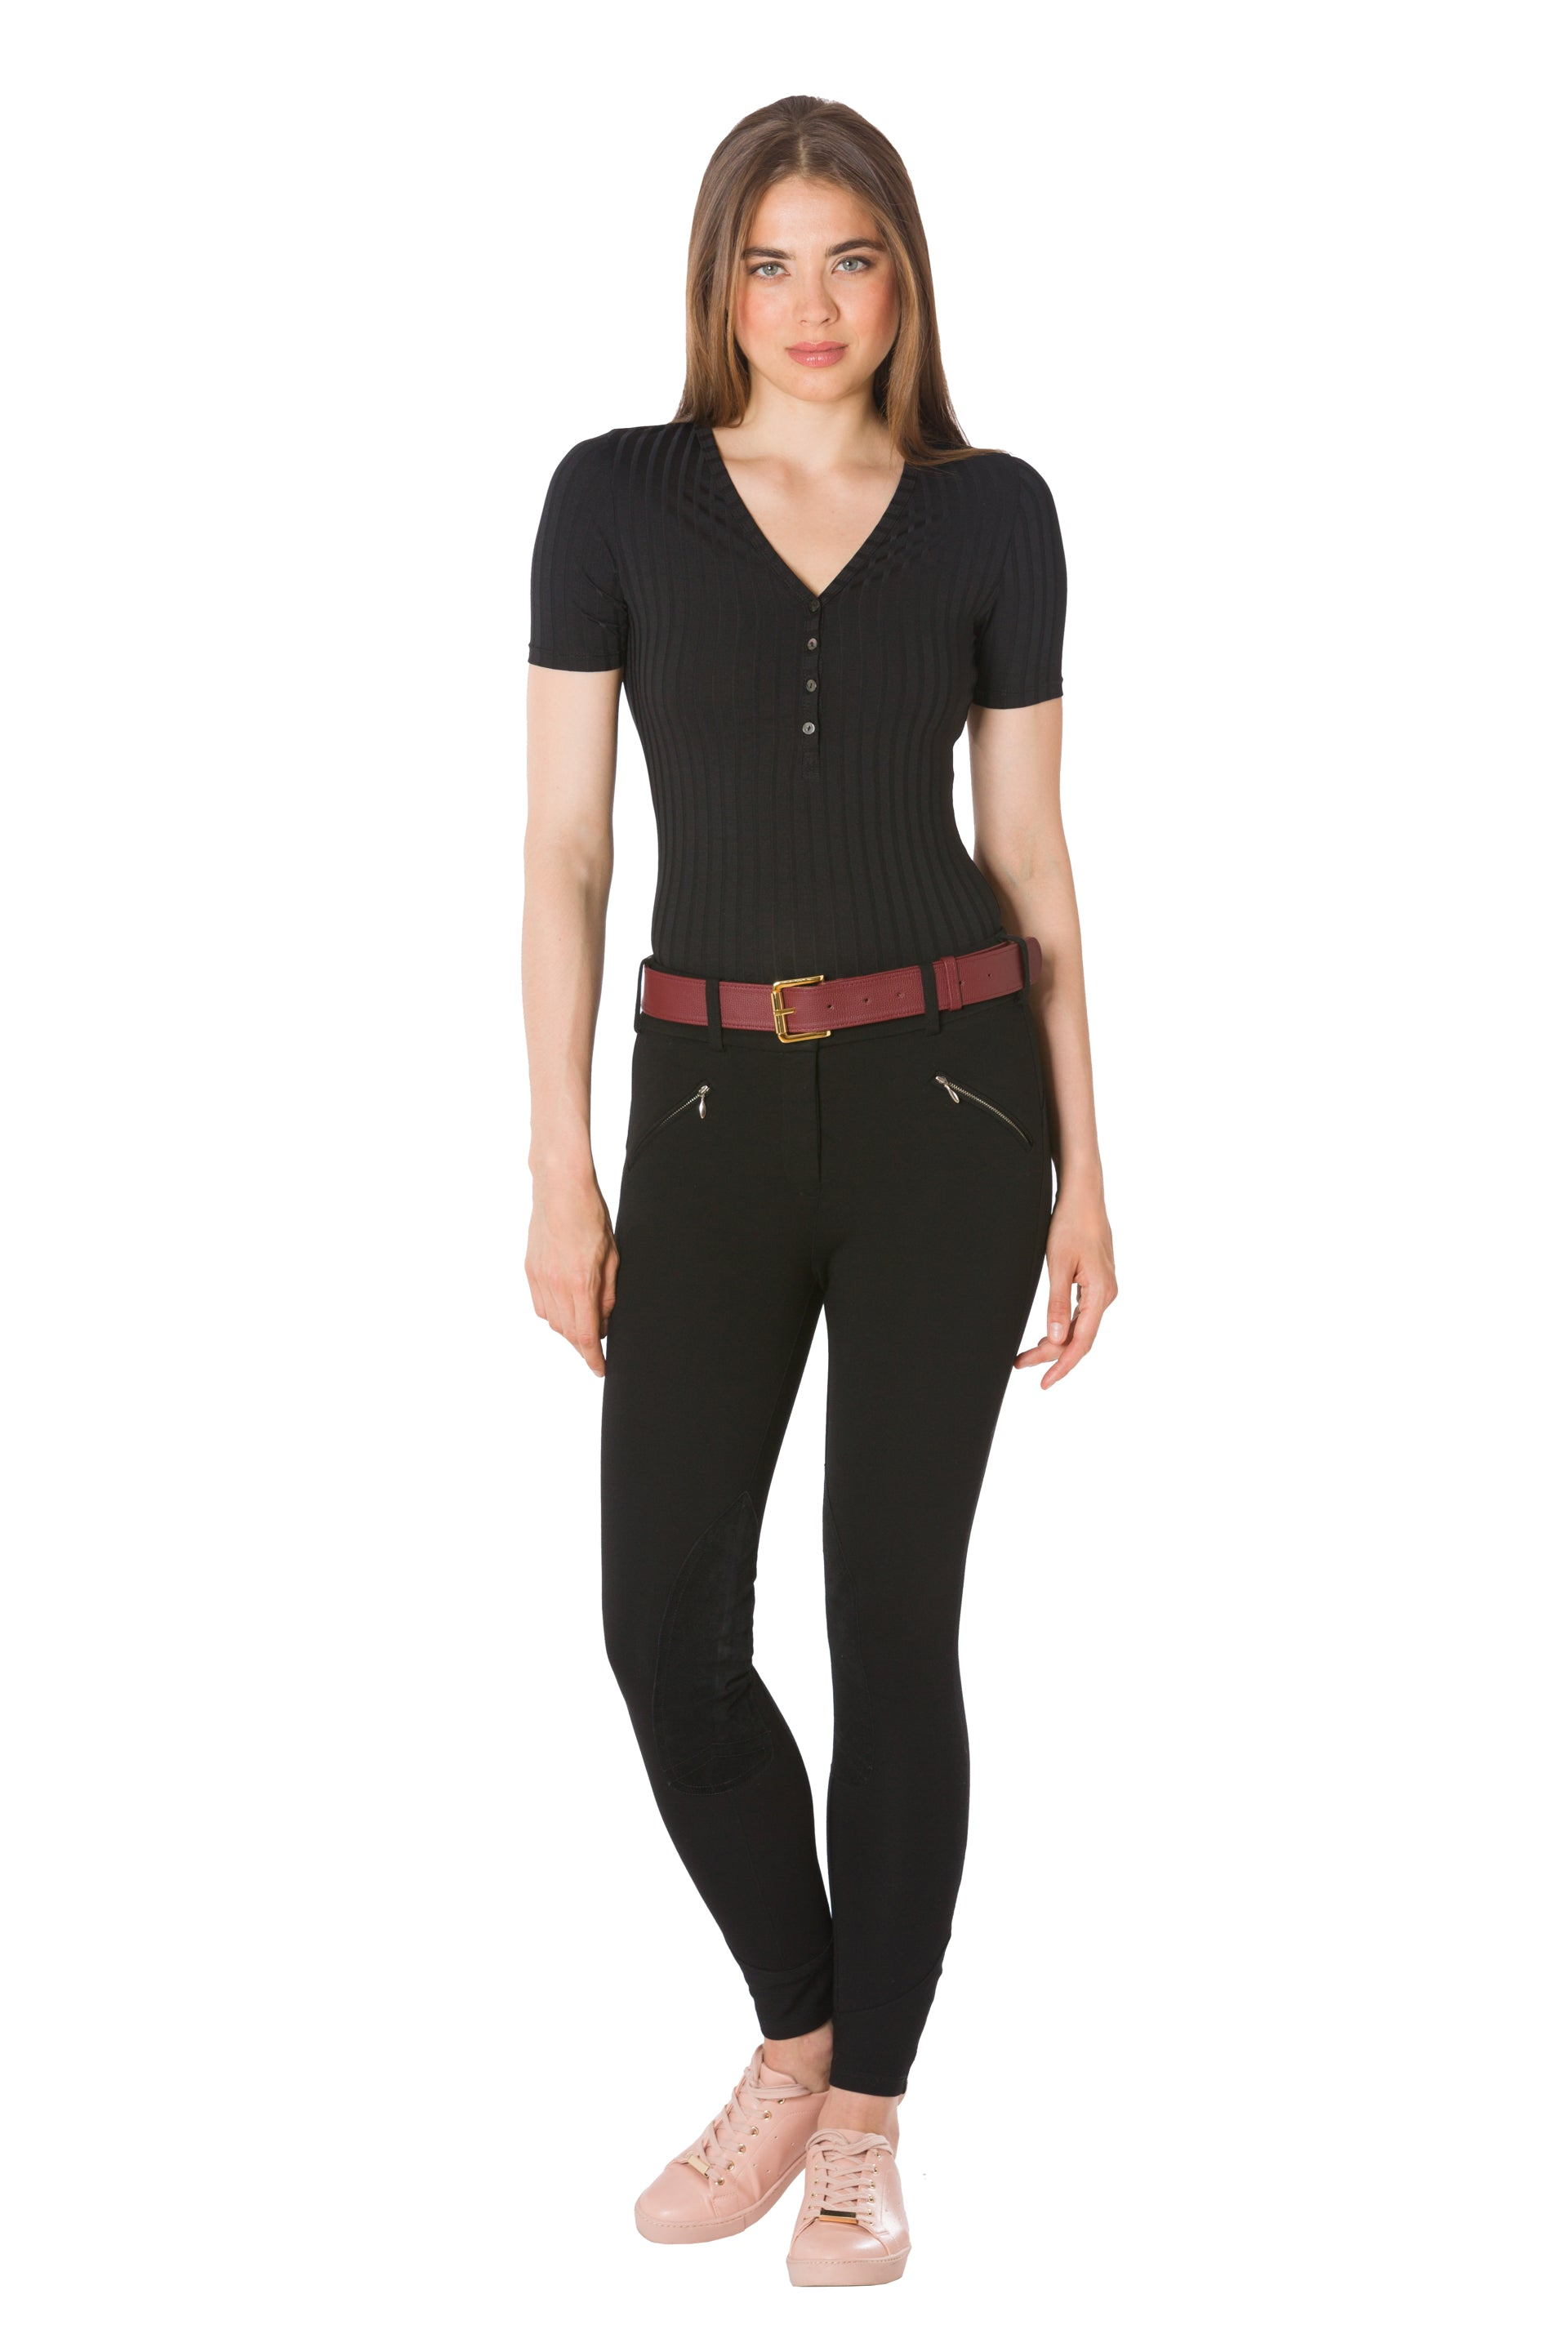 Raven- The Short Sleeve Henley Bodysuit